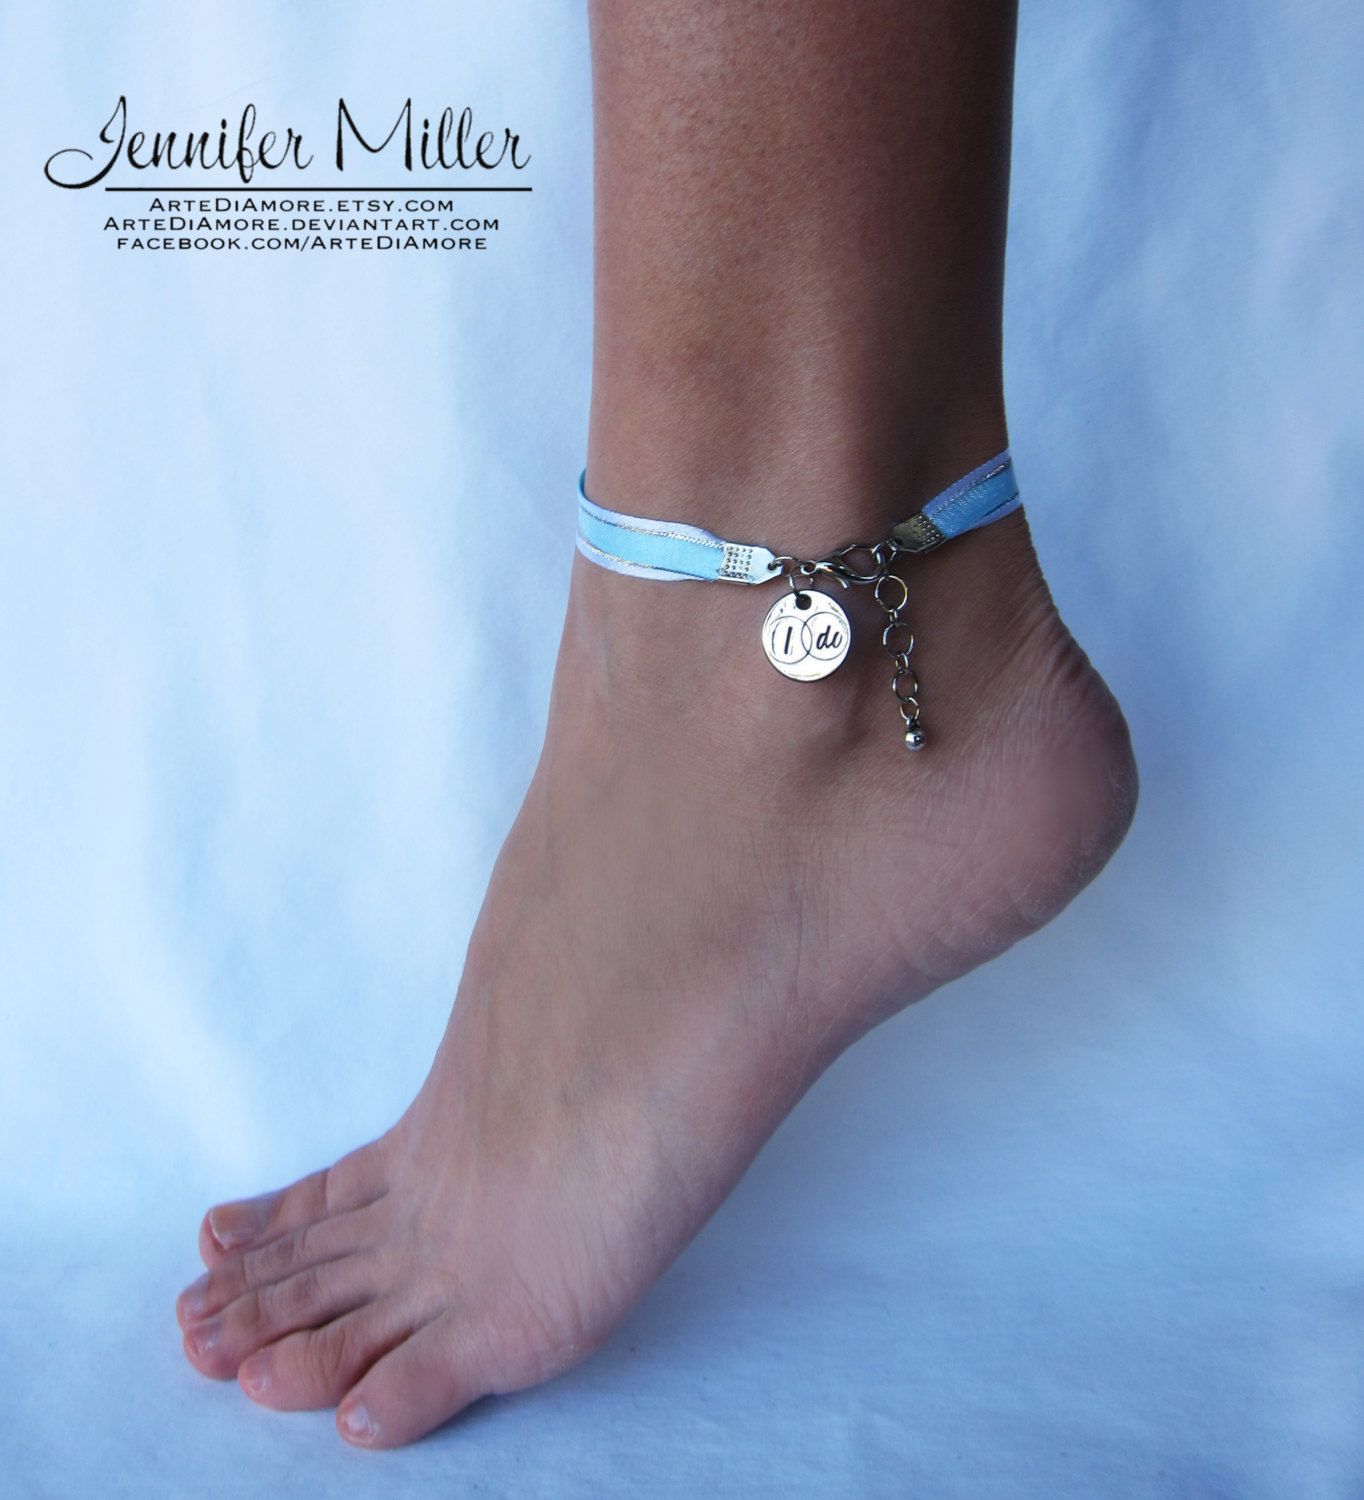 beachy bracelet jewelry kirn wedding anklet infinity silver fullxfull anklets il custom ankle gift p summer bridesmaid